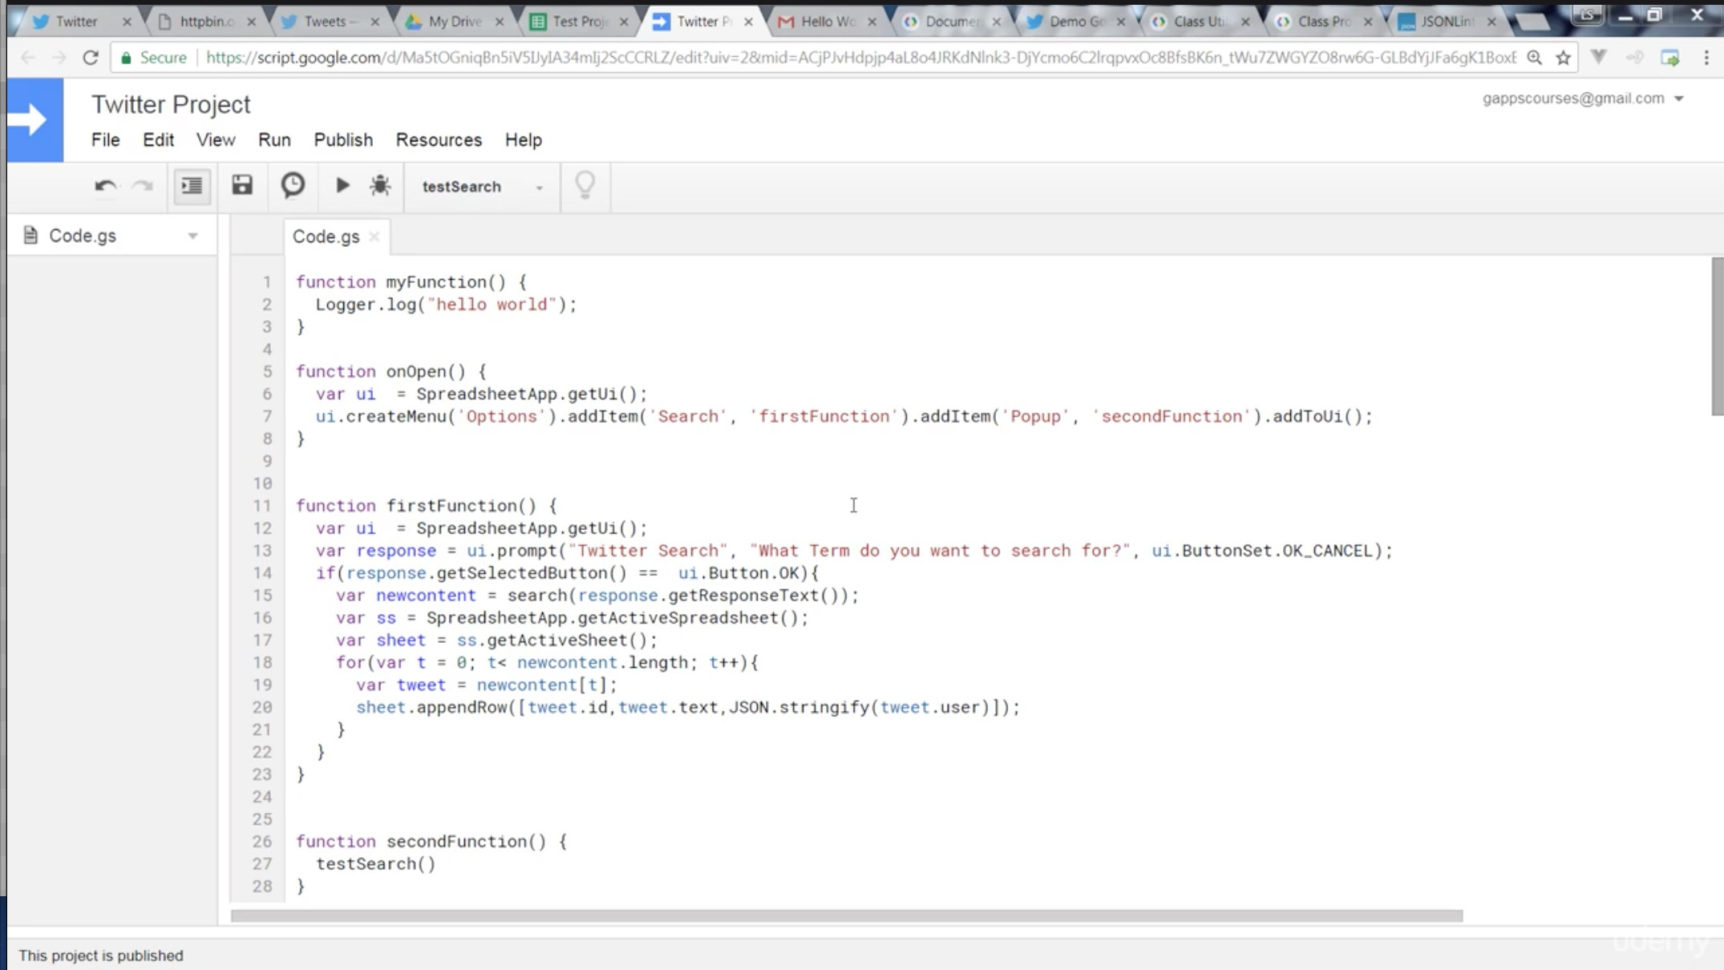 Google Spreadsheet Json Api Throughout Google Script Application Connecting To Twitter Api And More  Udemy